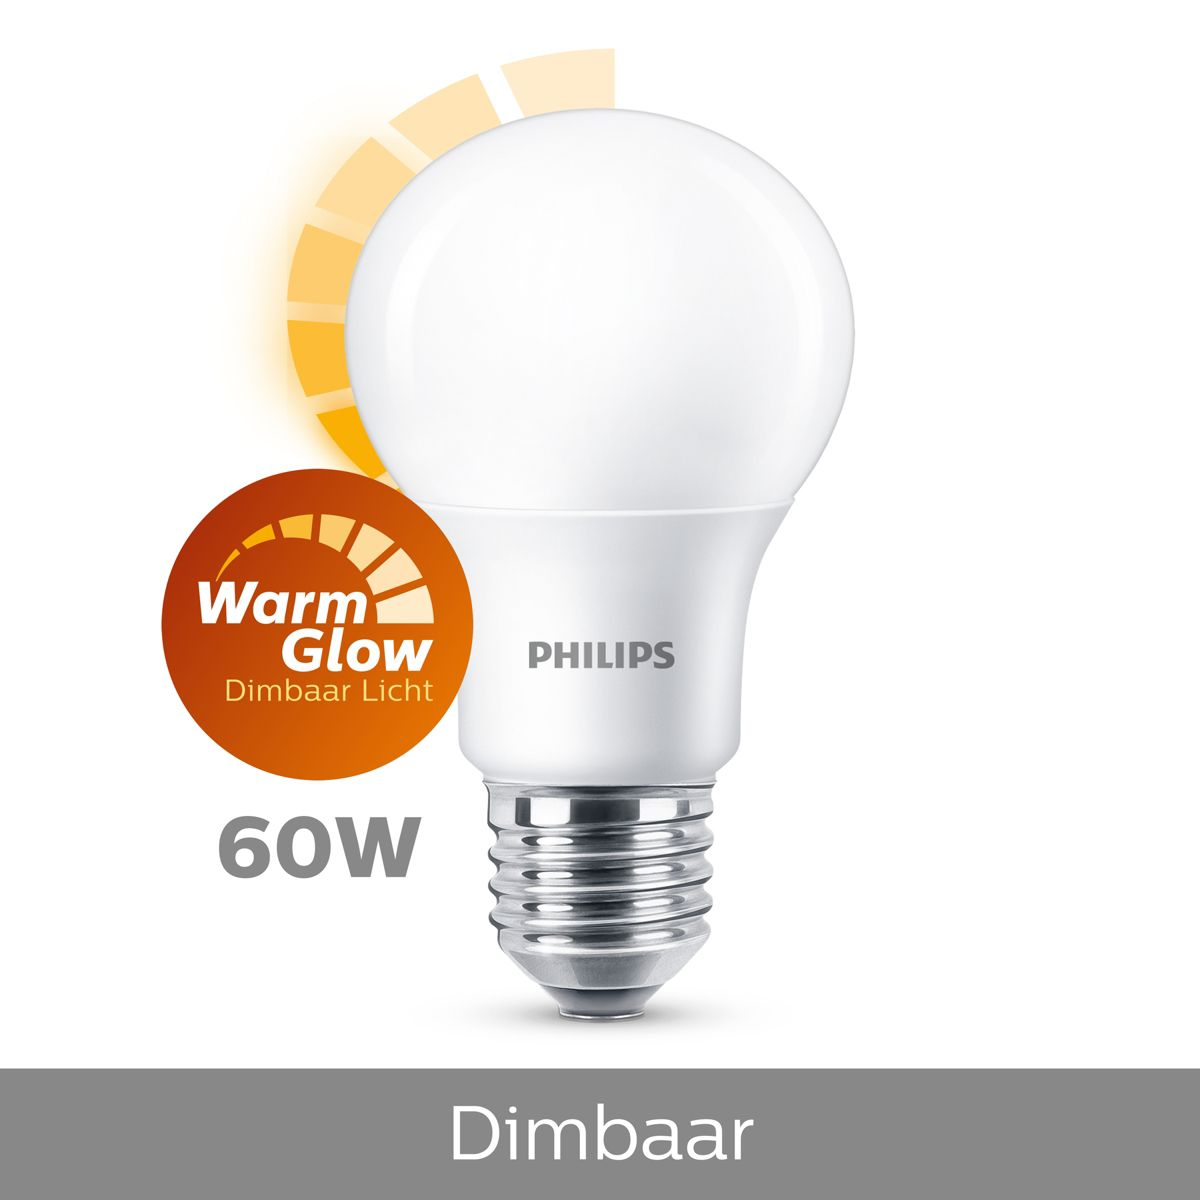 Dimbare Lamp Led Lamp Dimbaar 8718696706916 Philips